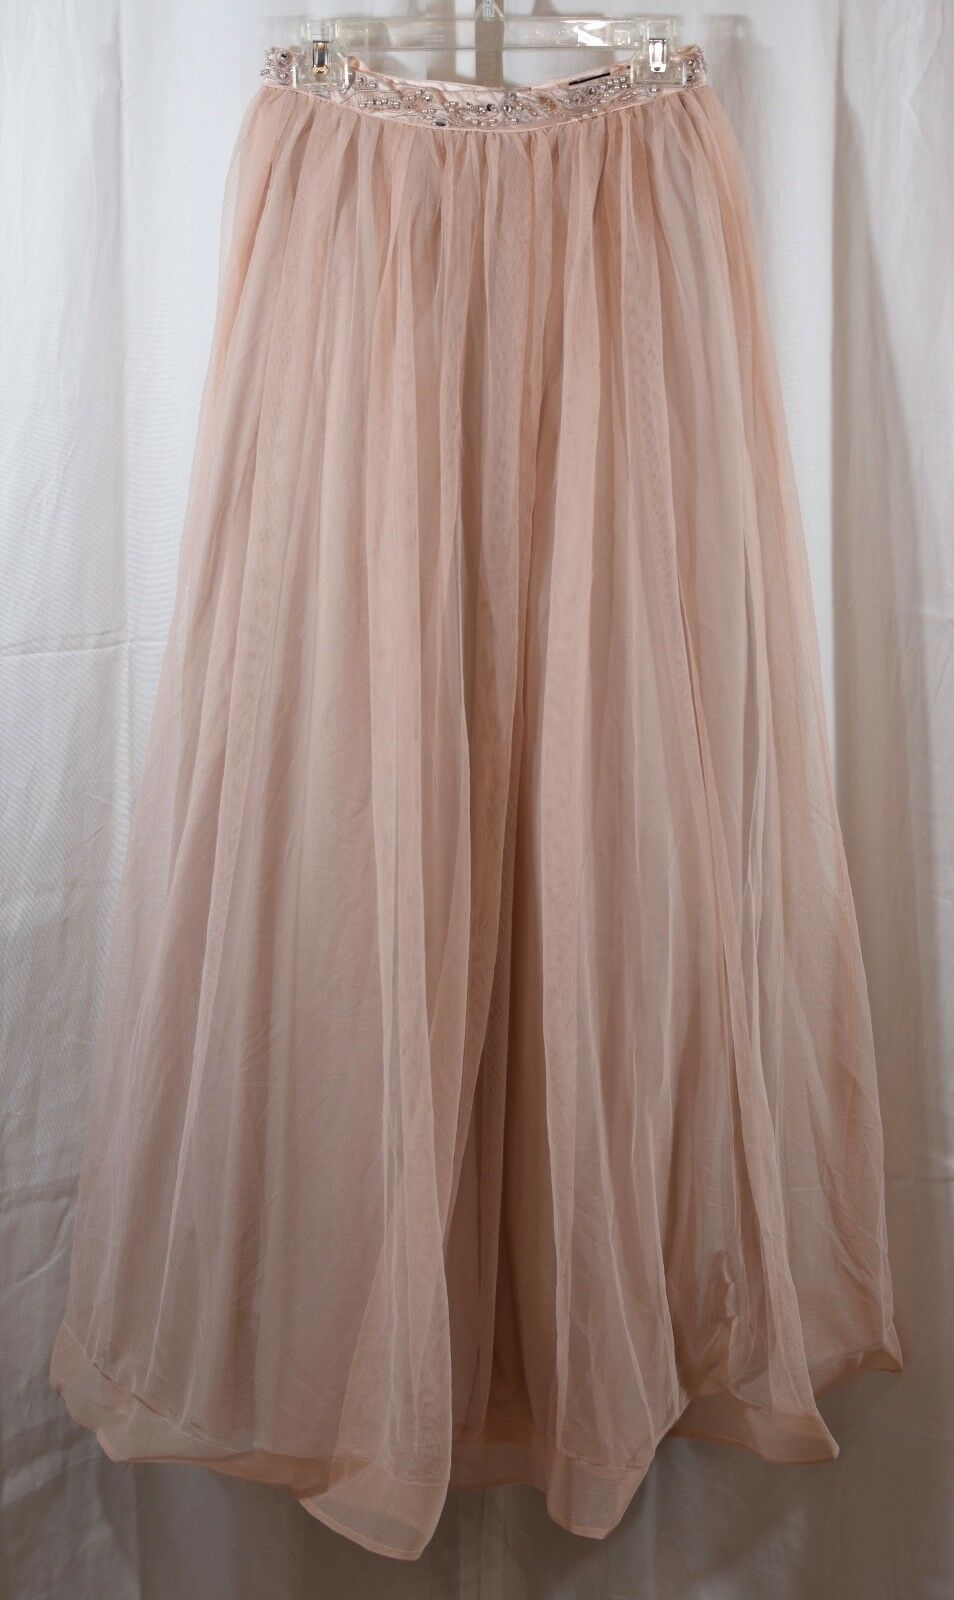 Sequin Hearts Beaded Lace Two-Piece Gown Skirt Only Size 5